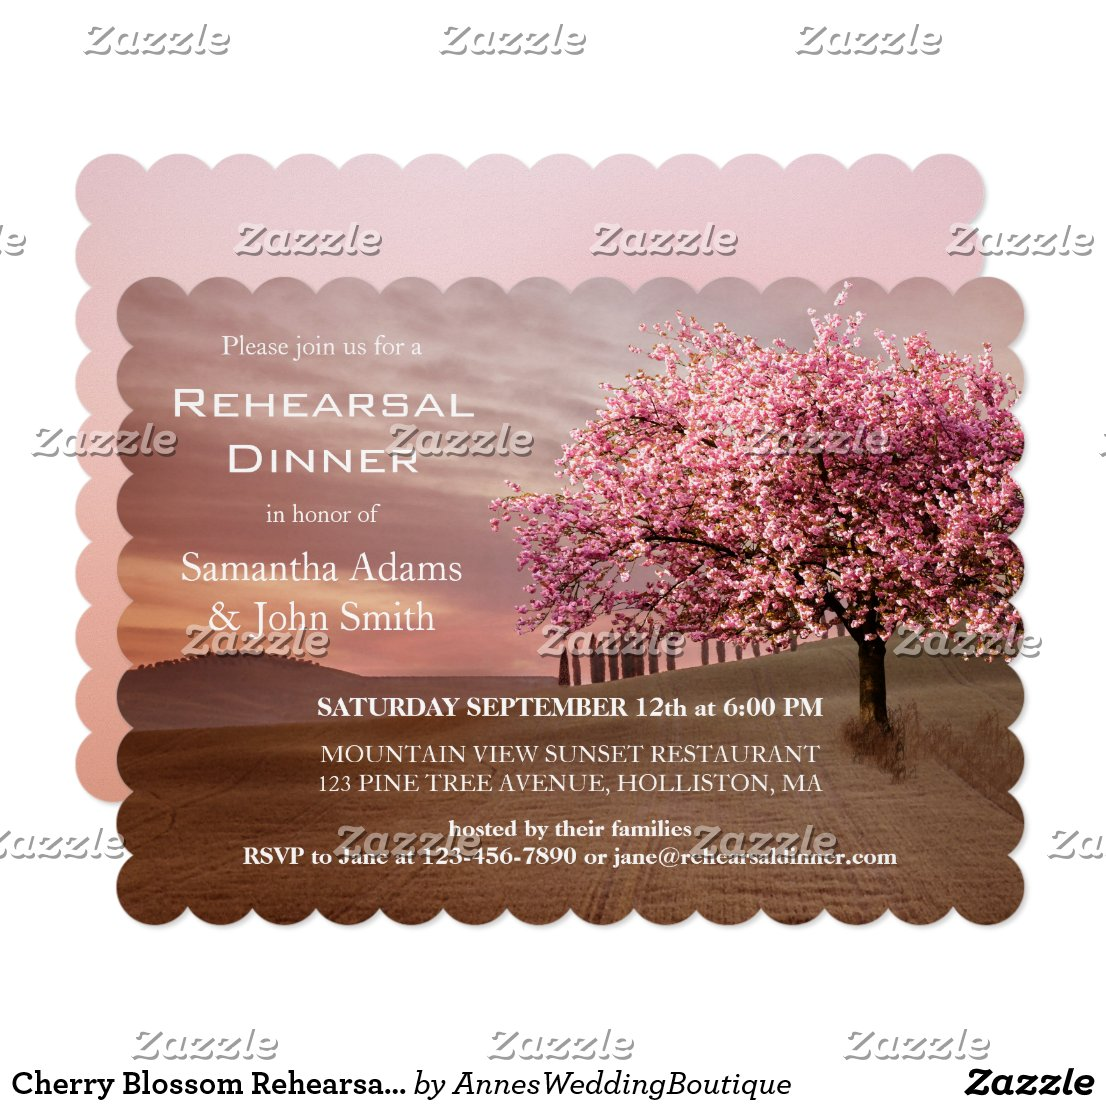 Cherry Blossom Rehearsal Dinner Invitation